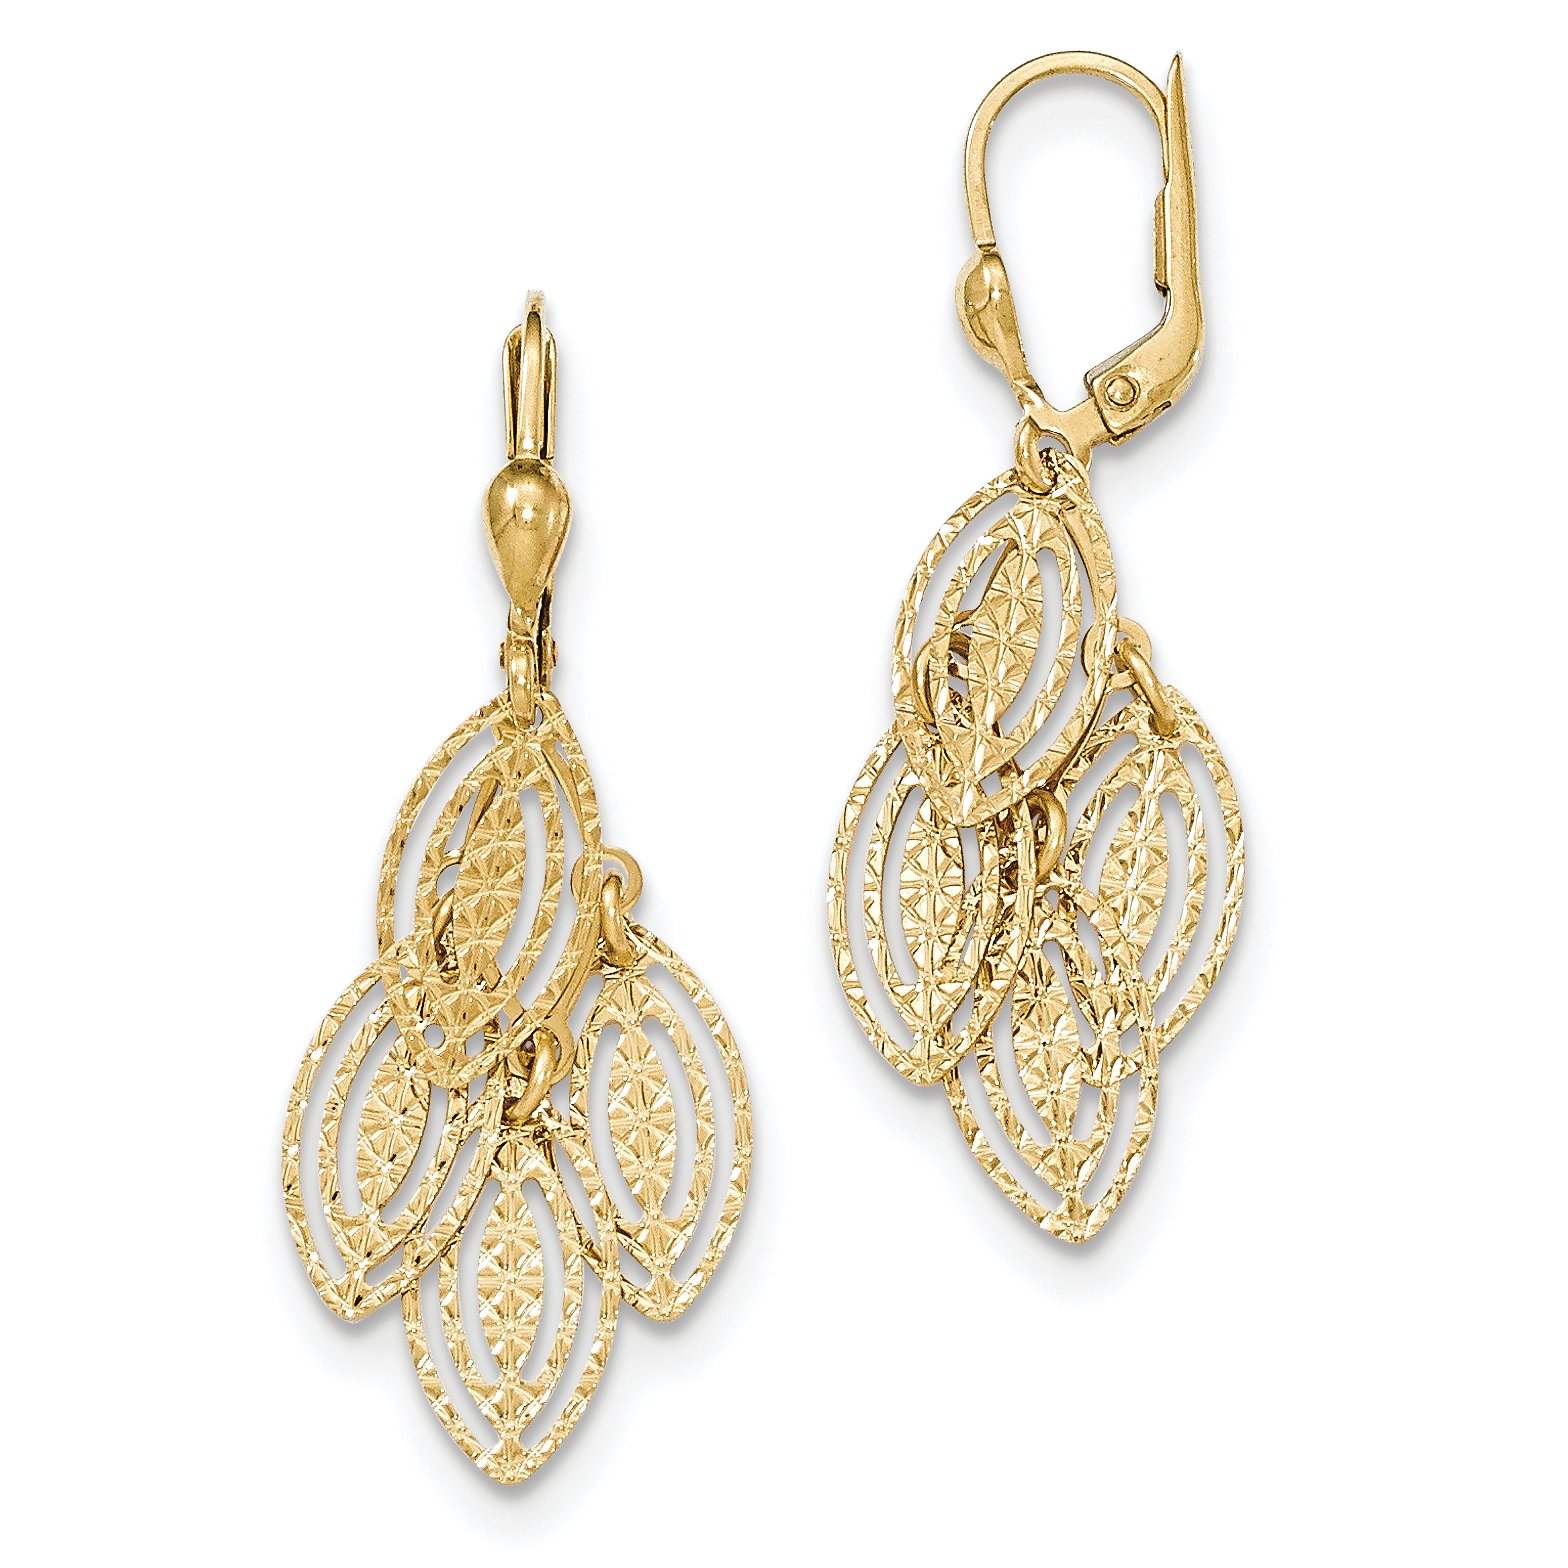 ICE CARATS 14k Yellow Gold Textured Drop Dangle Chandelier Leverback Earrings Lever Back Fine Jewelry Gift Set For Women Heart